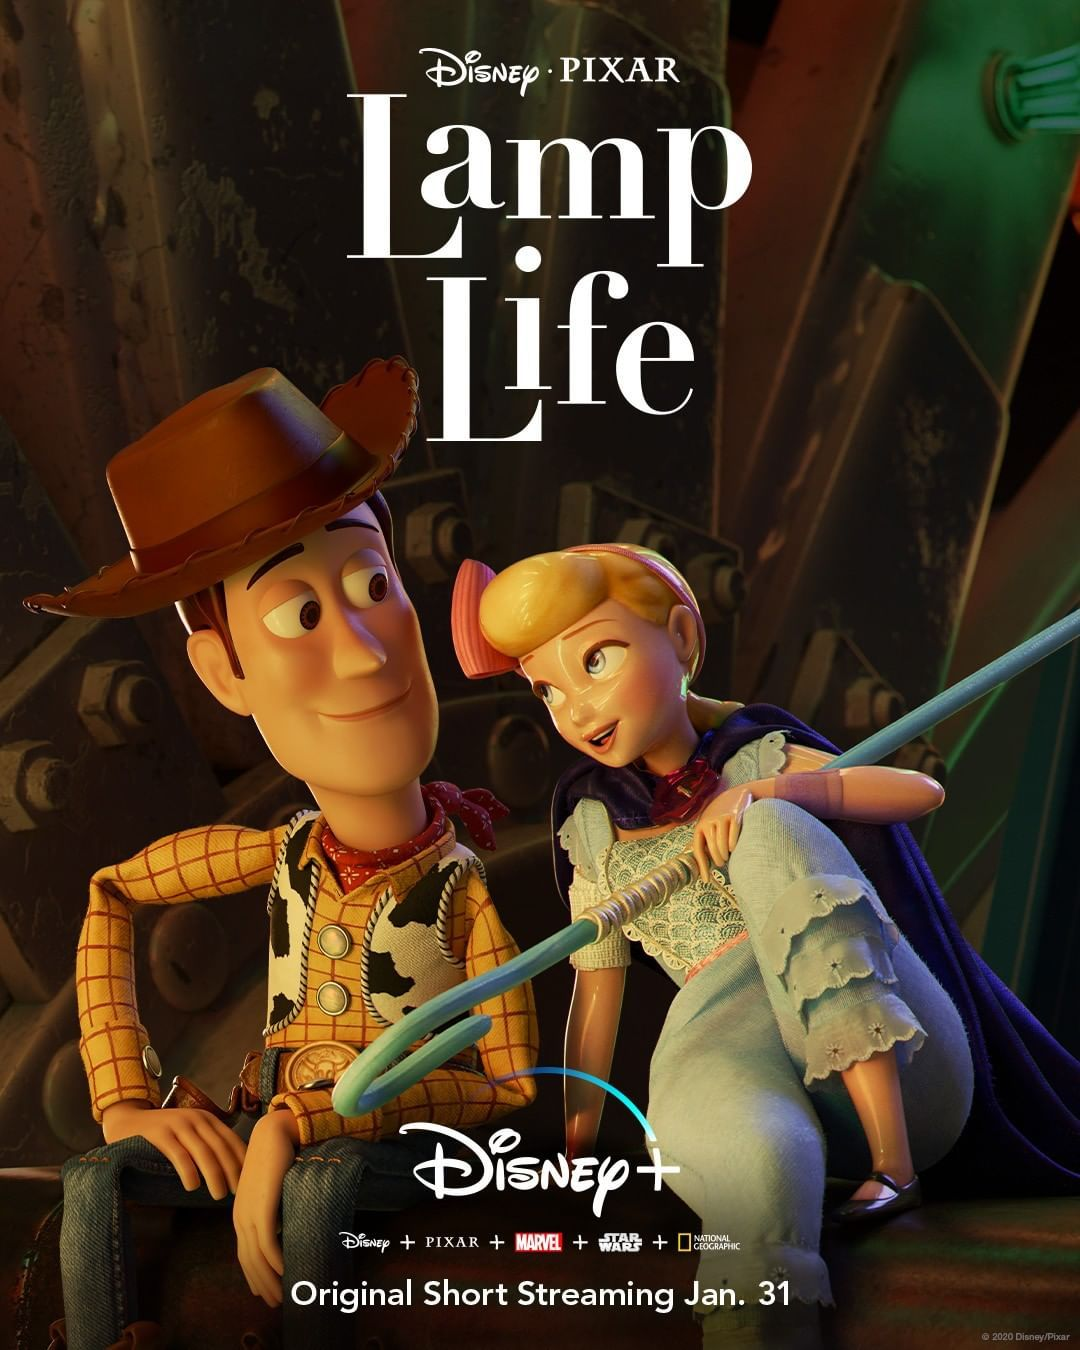 Disney On Instagram Bo Peep Has Her Own Toy Story To Tell Start Streaming Lamp Life An Original Short January In 2020 Bo Peep Toy Story Pixar Shorts New Toy Story